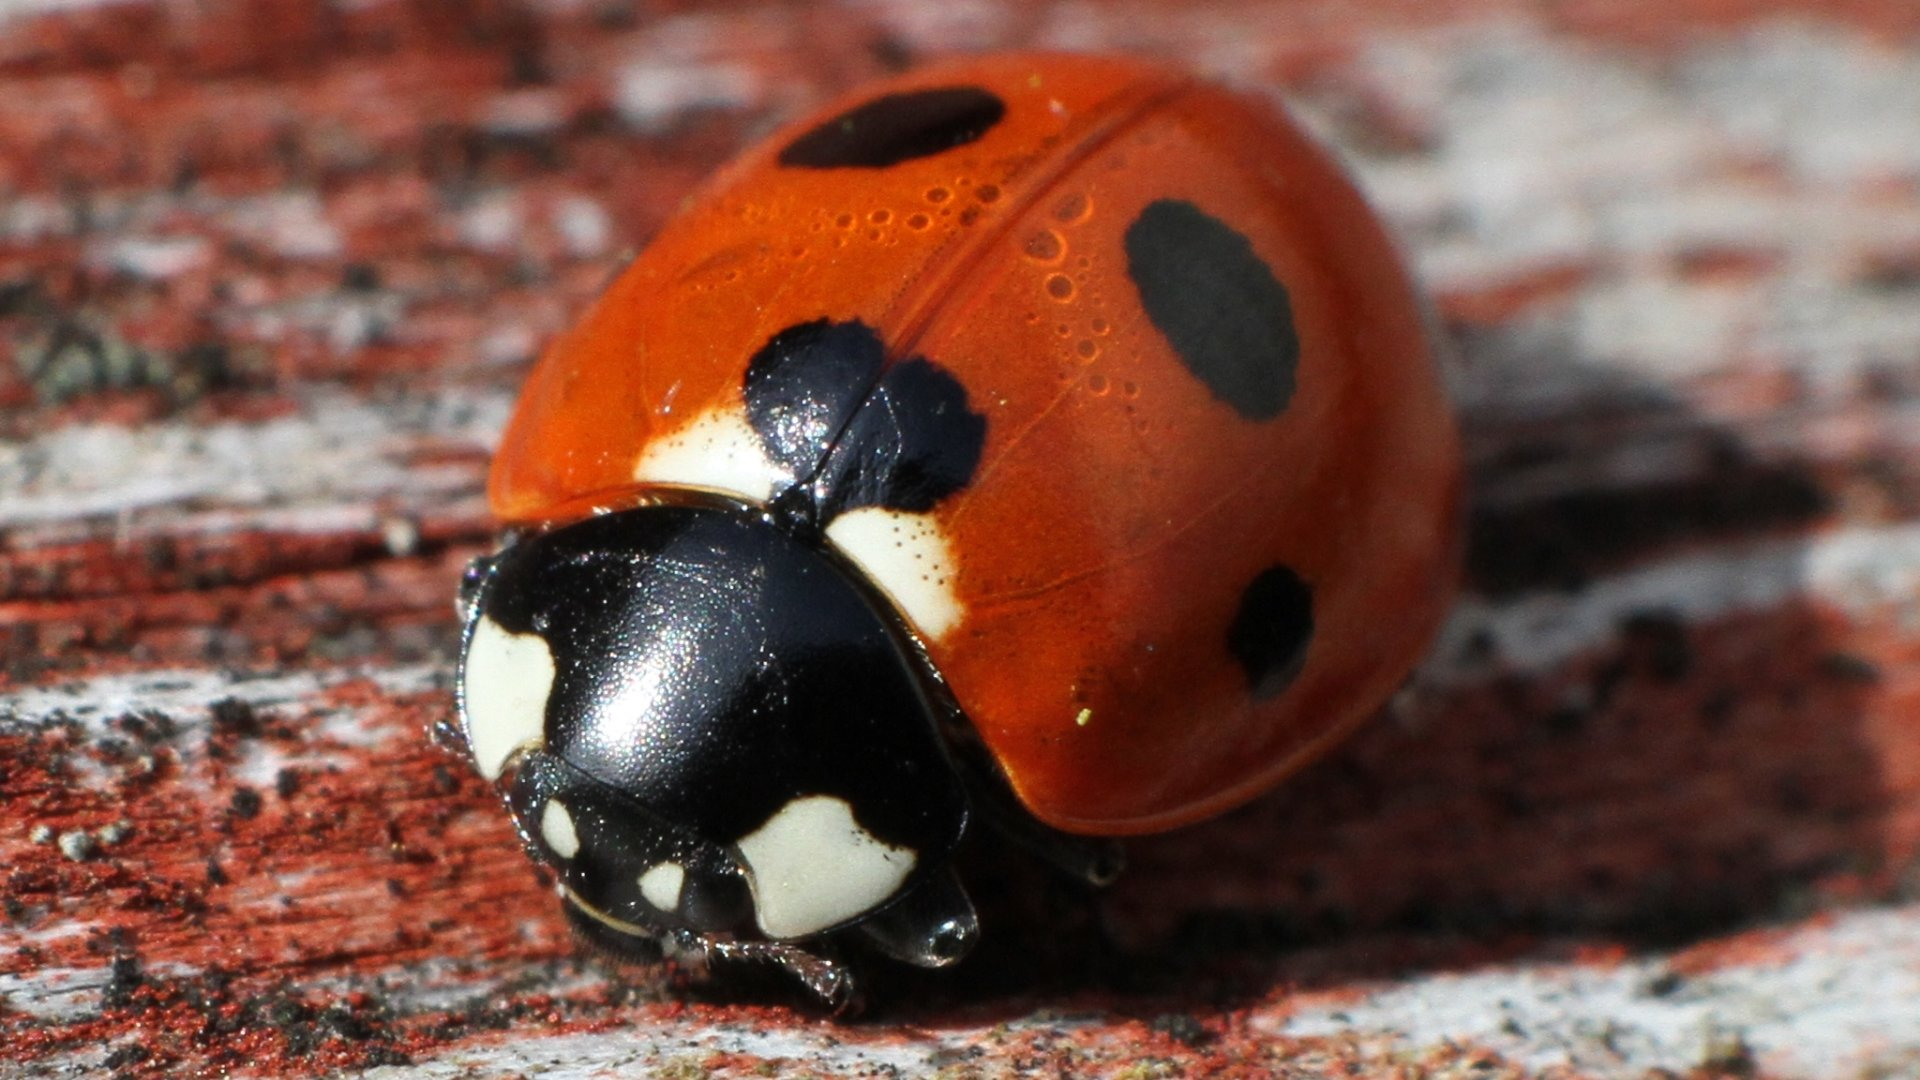 Awesome Ladybug free wallpaper ID:270542 for 1080p PC